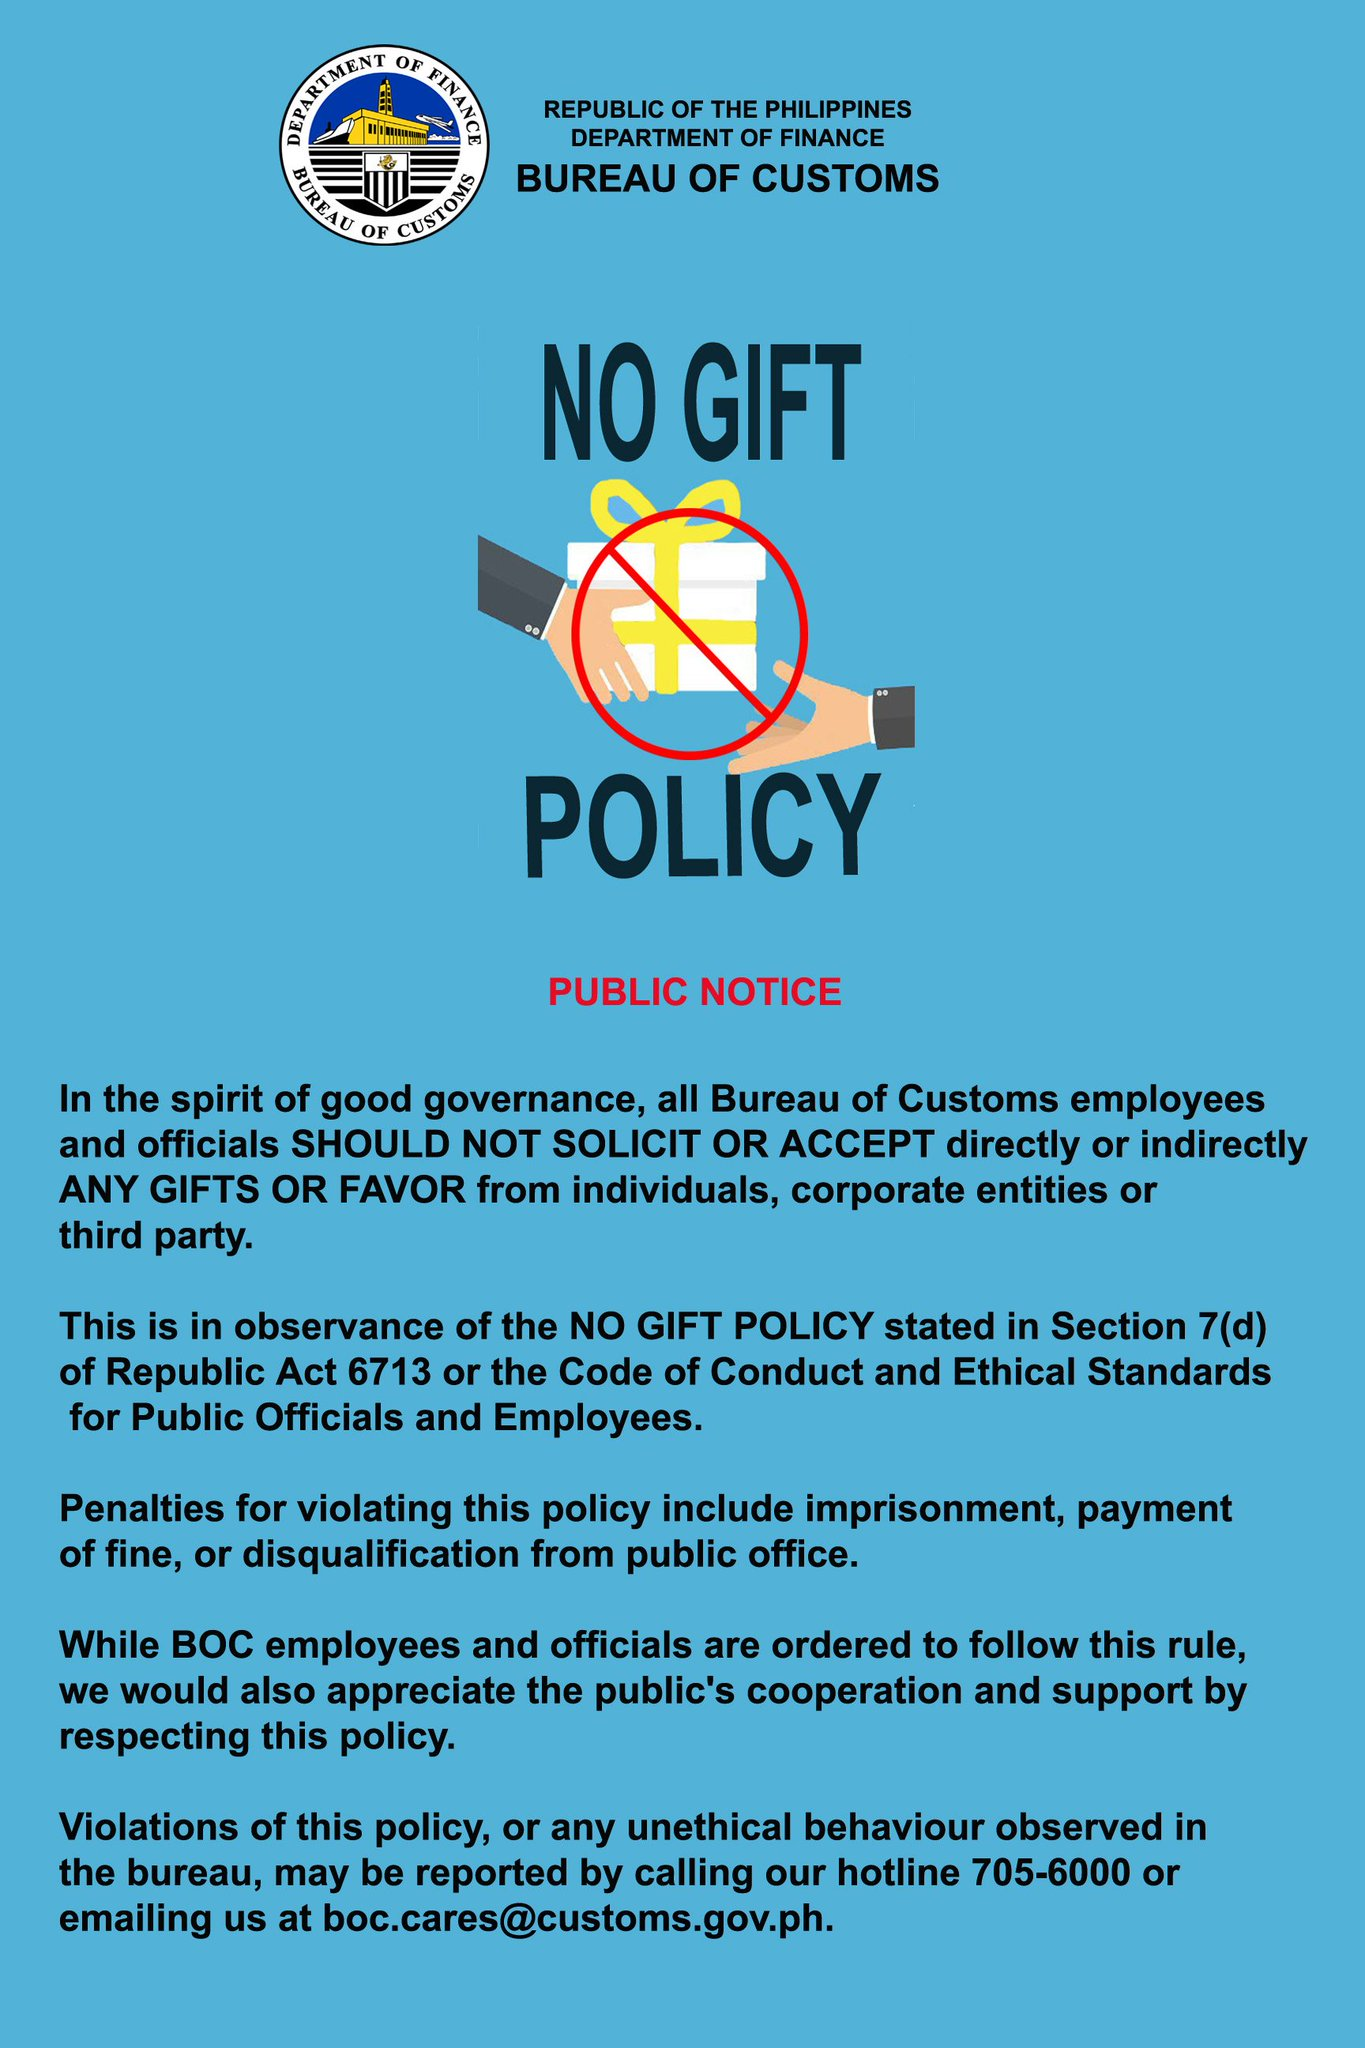 code of ethics for government officials and employees r a 6713 Senate bill 1680 seeks to amend republic act 6713, or the code of conduct and  we can hold government employees and officials to a  a high standard of ethics.